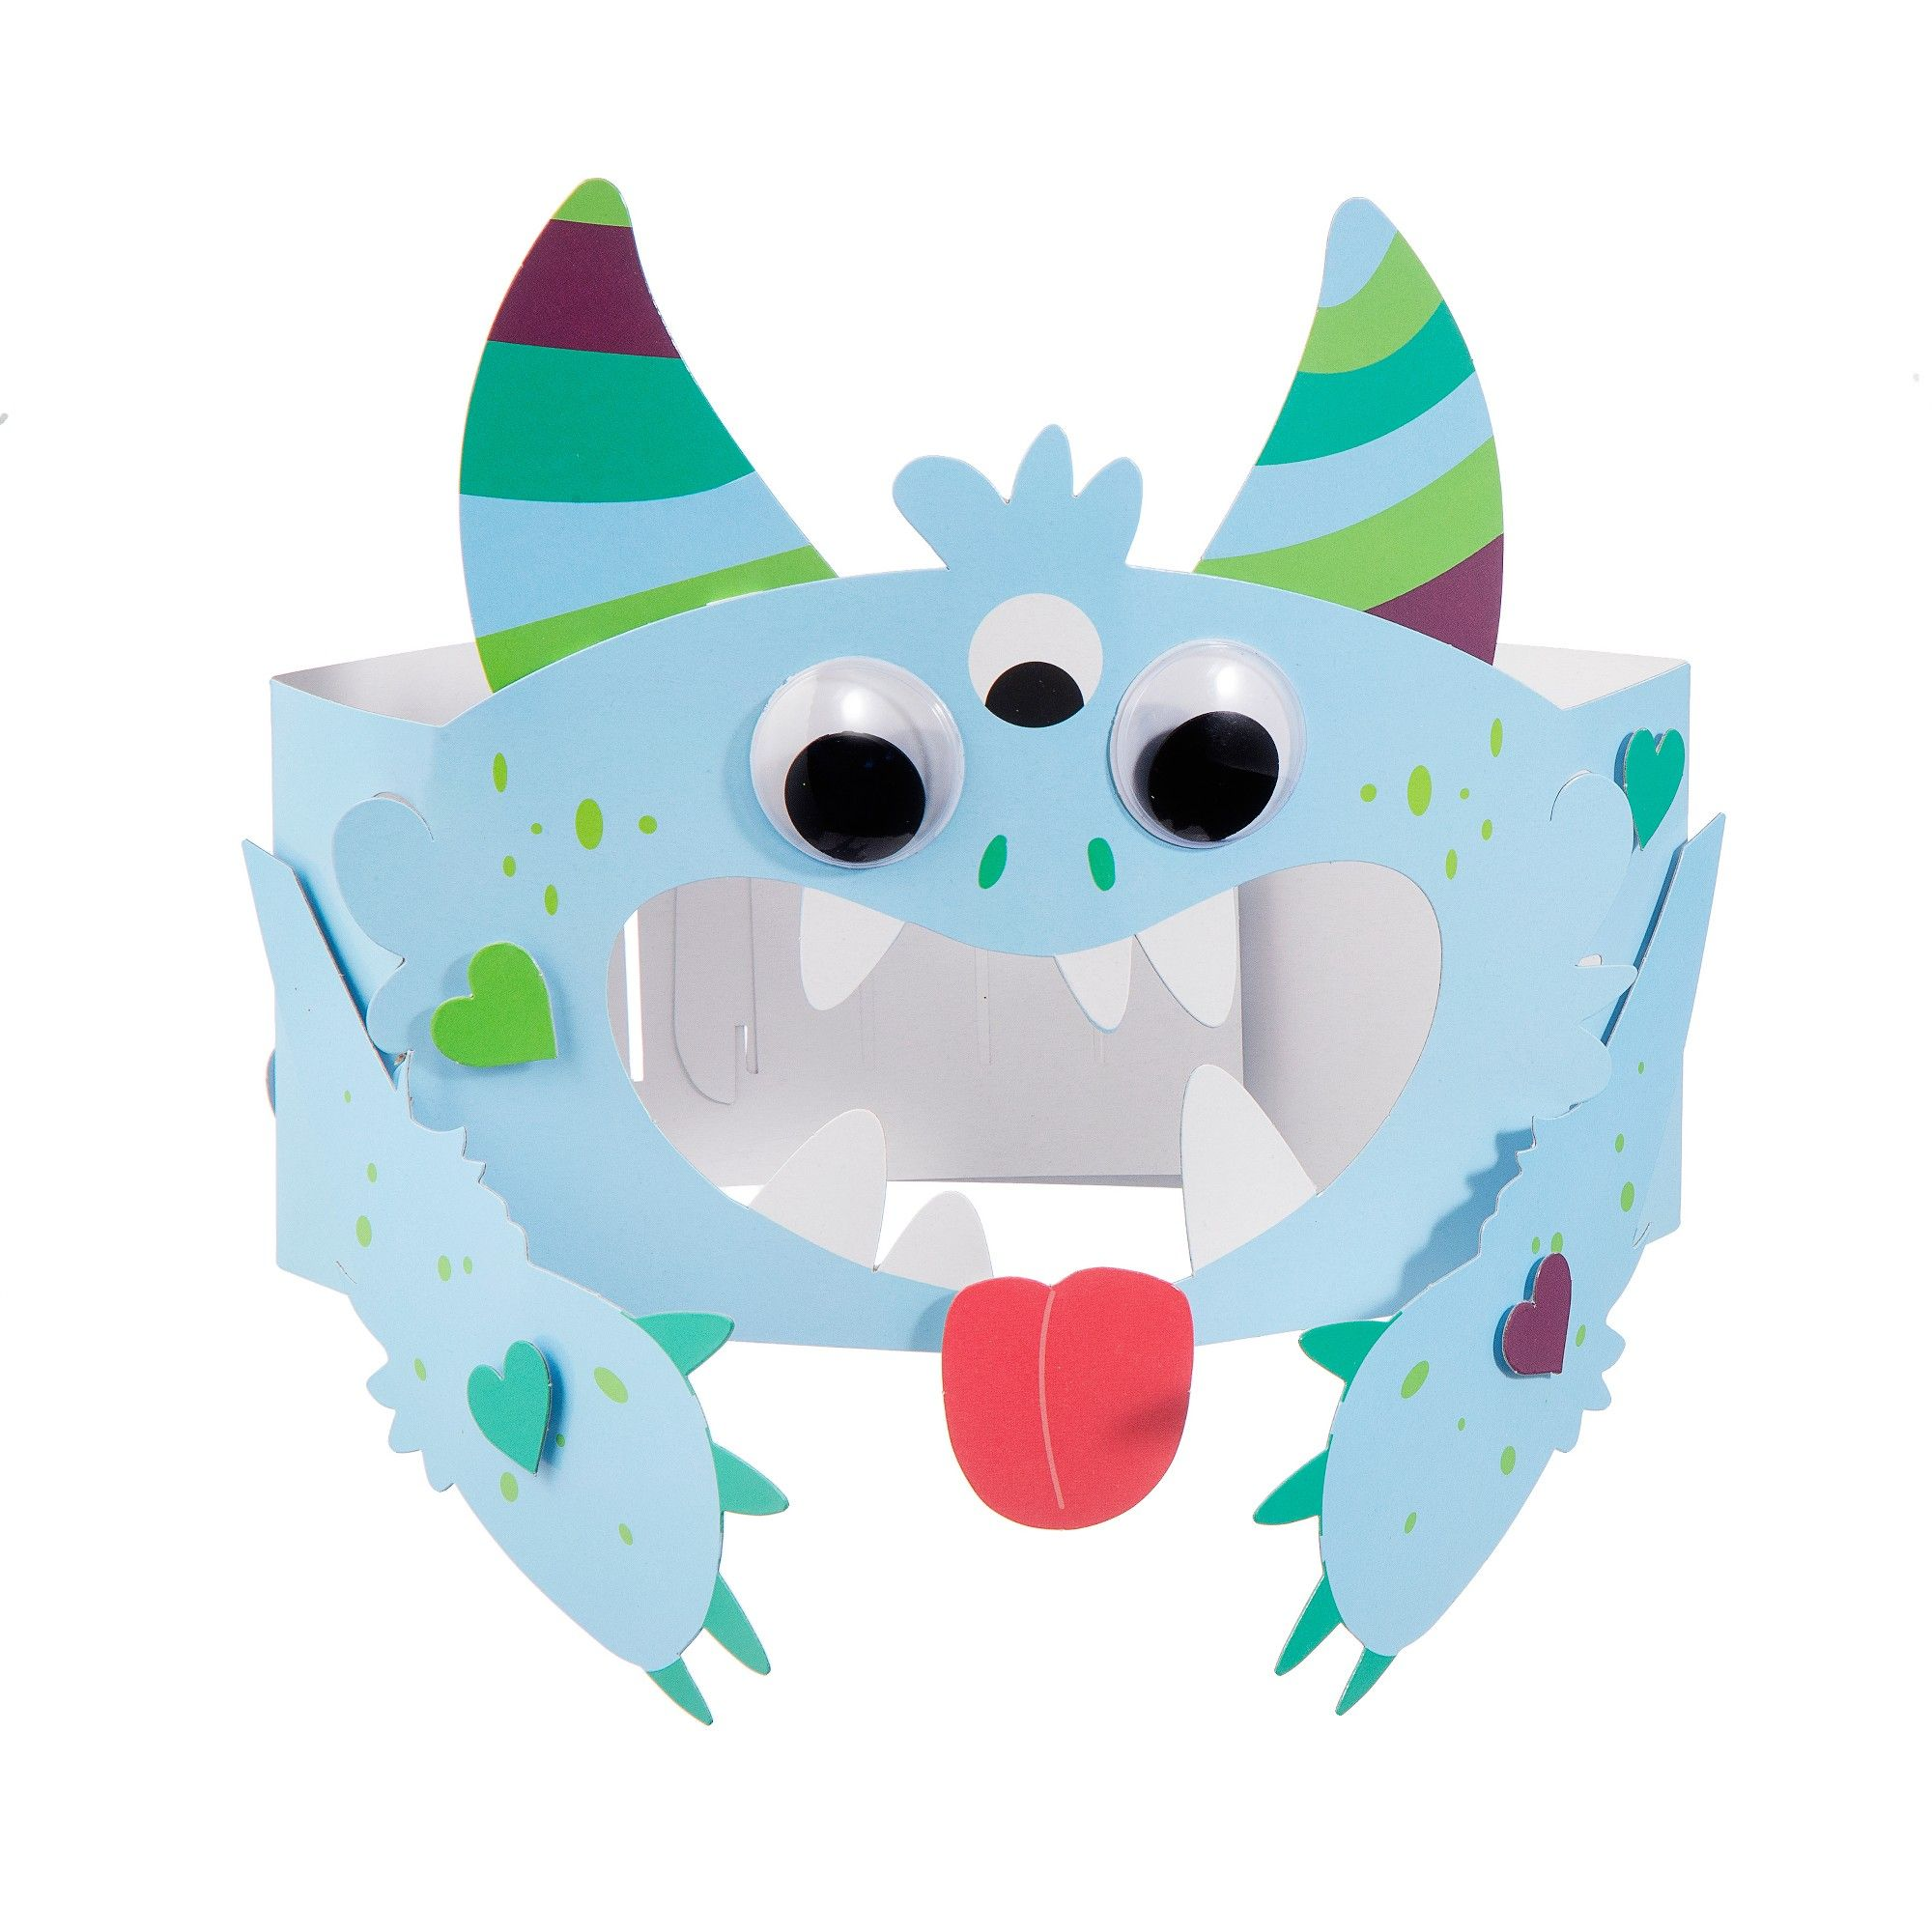 b9a8549f6 Valentine's Day Craft Crown Kit Monster - Spritz, Multi-Colored ...